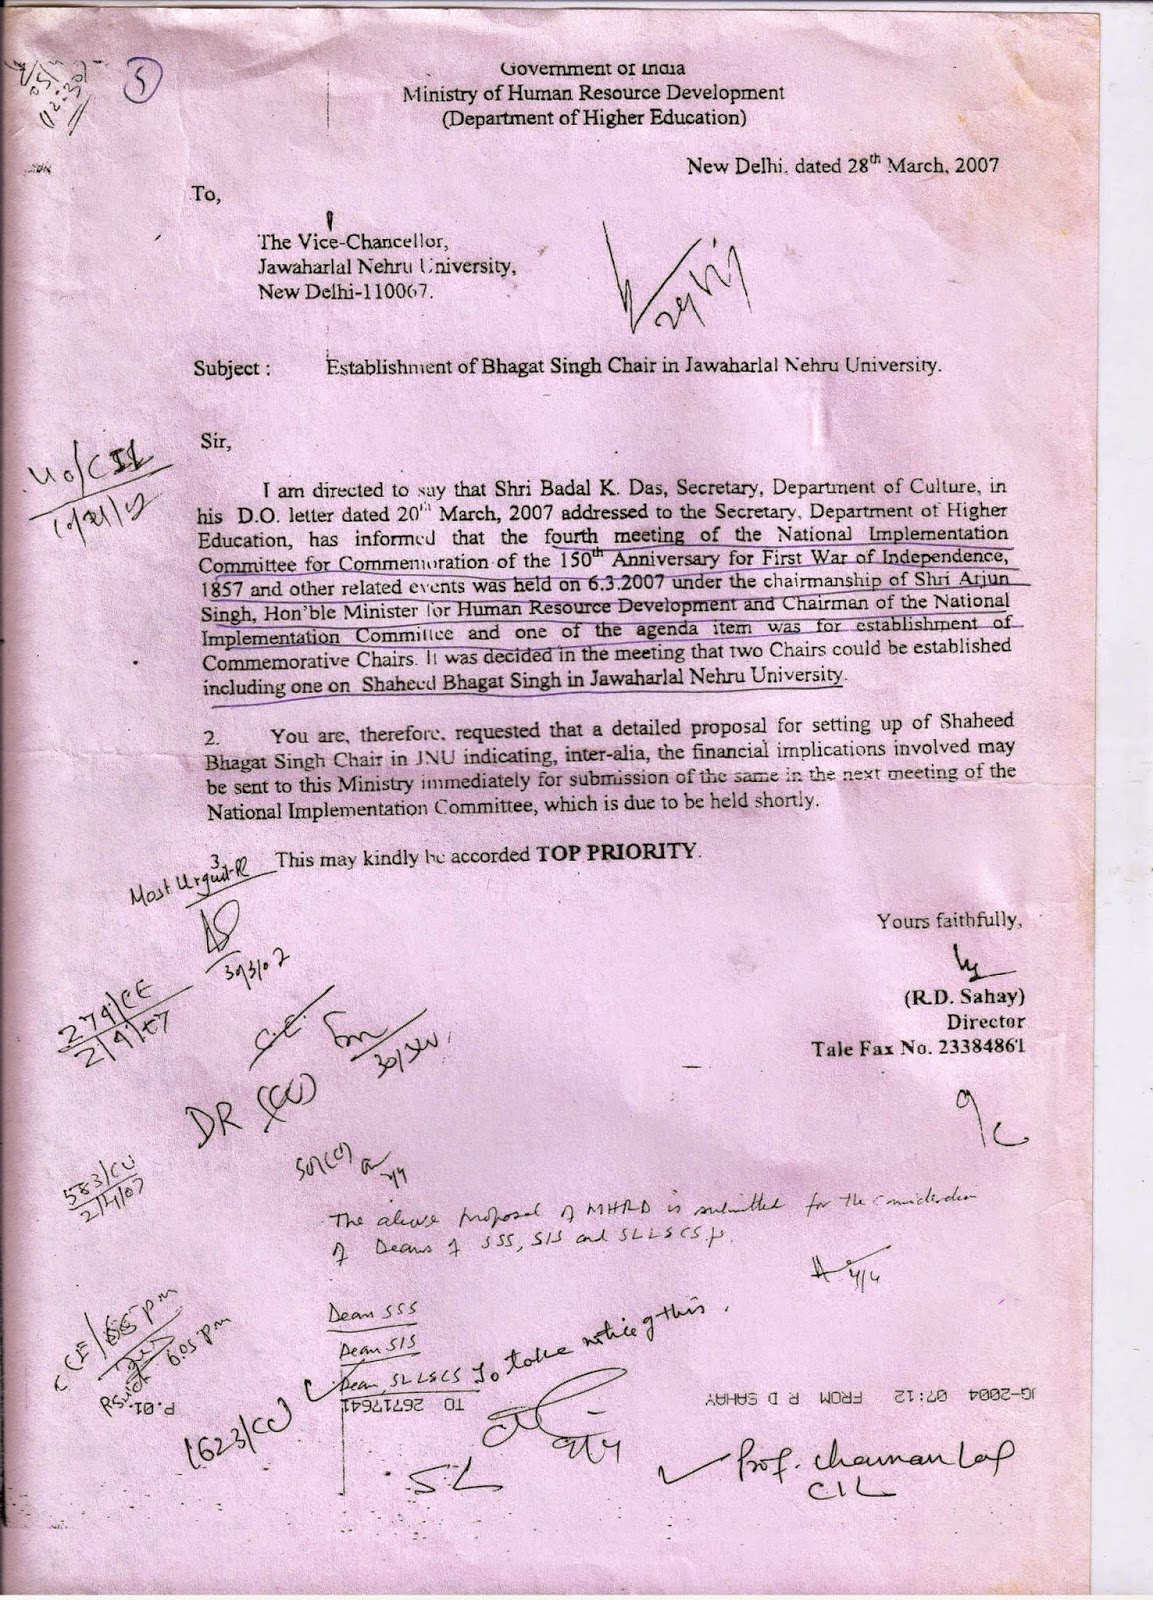 bhagat singh study chaman lal sad story of bhagat singh chair in govt sent the letter in this regard to jnu on 28th 2007 asking for proposal to set up bhagat singh chair